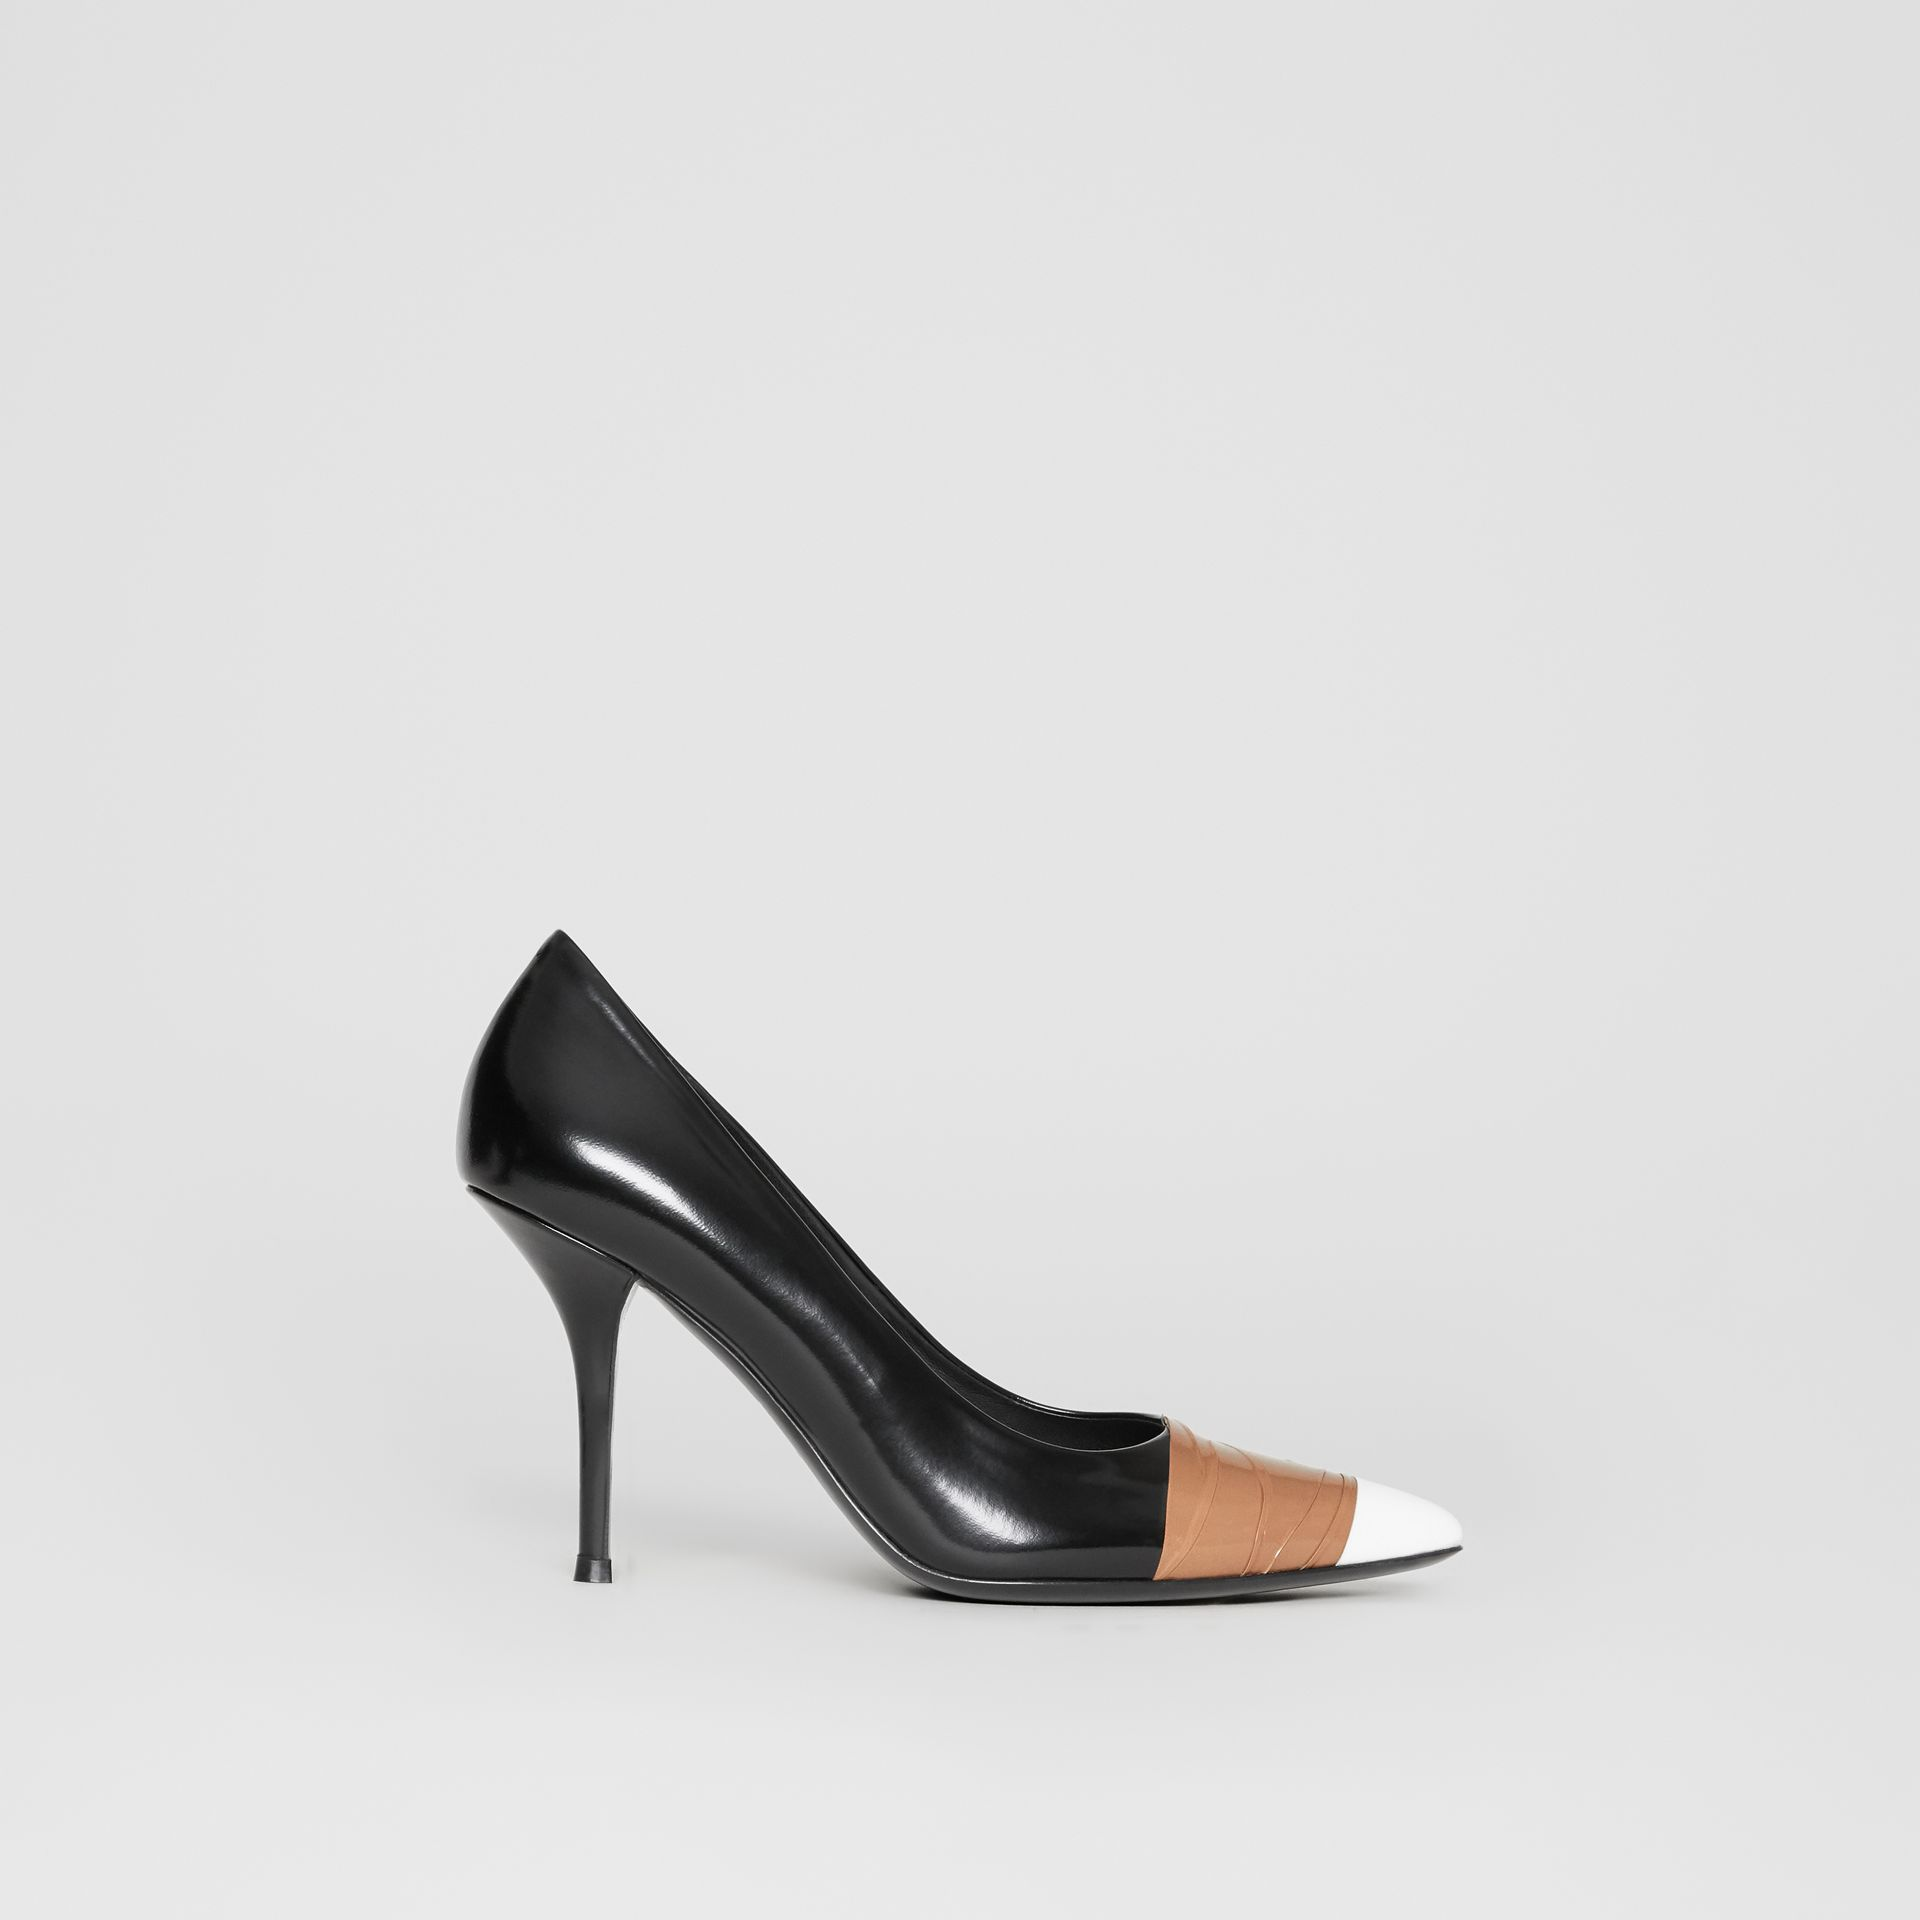 Tape Detail Leather Pumps in Black/optic White - Women | Burberry Australia - gallery image 5